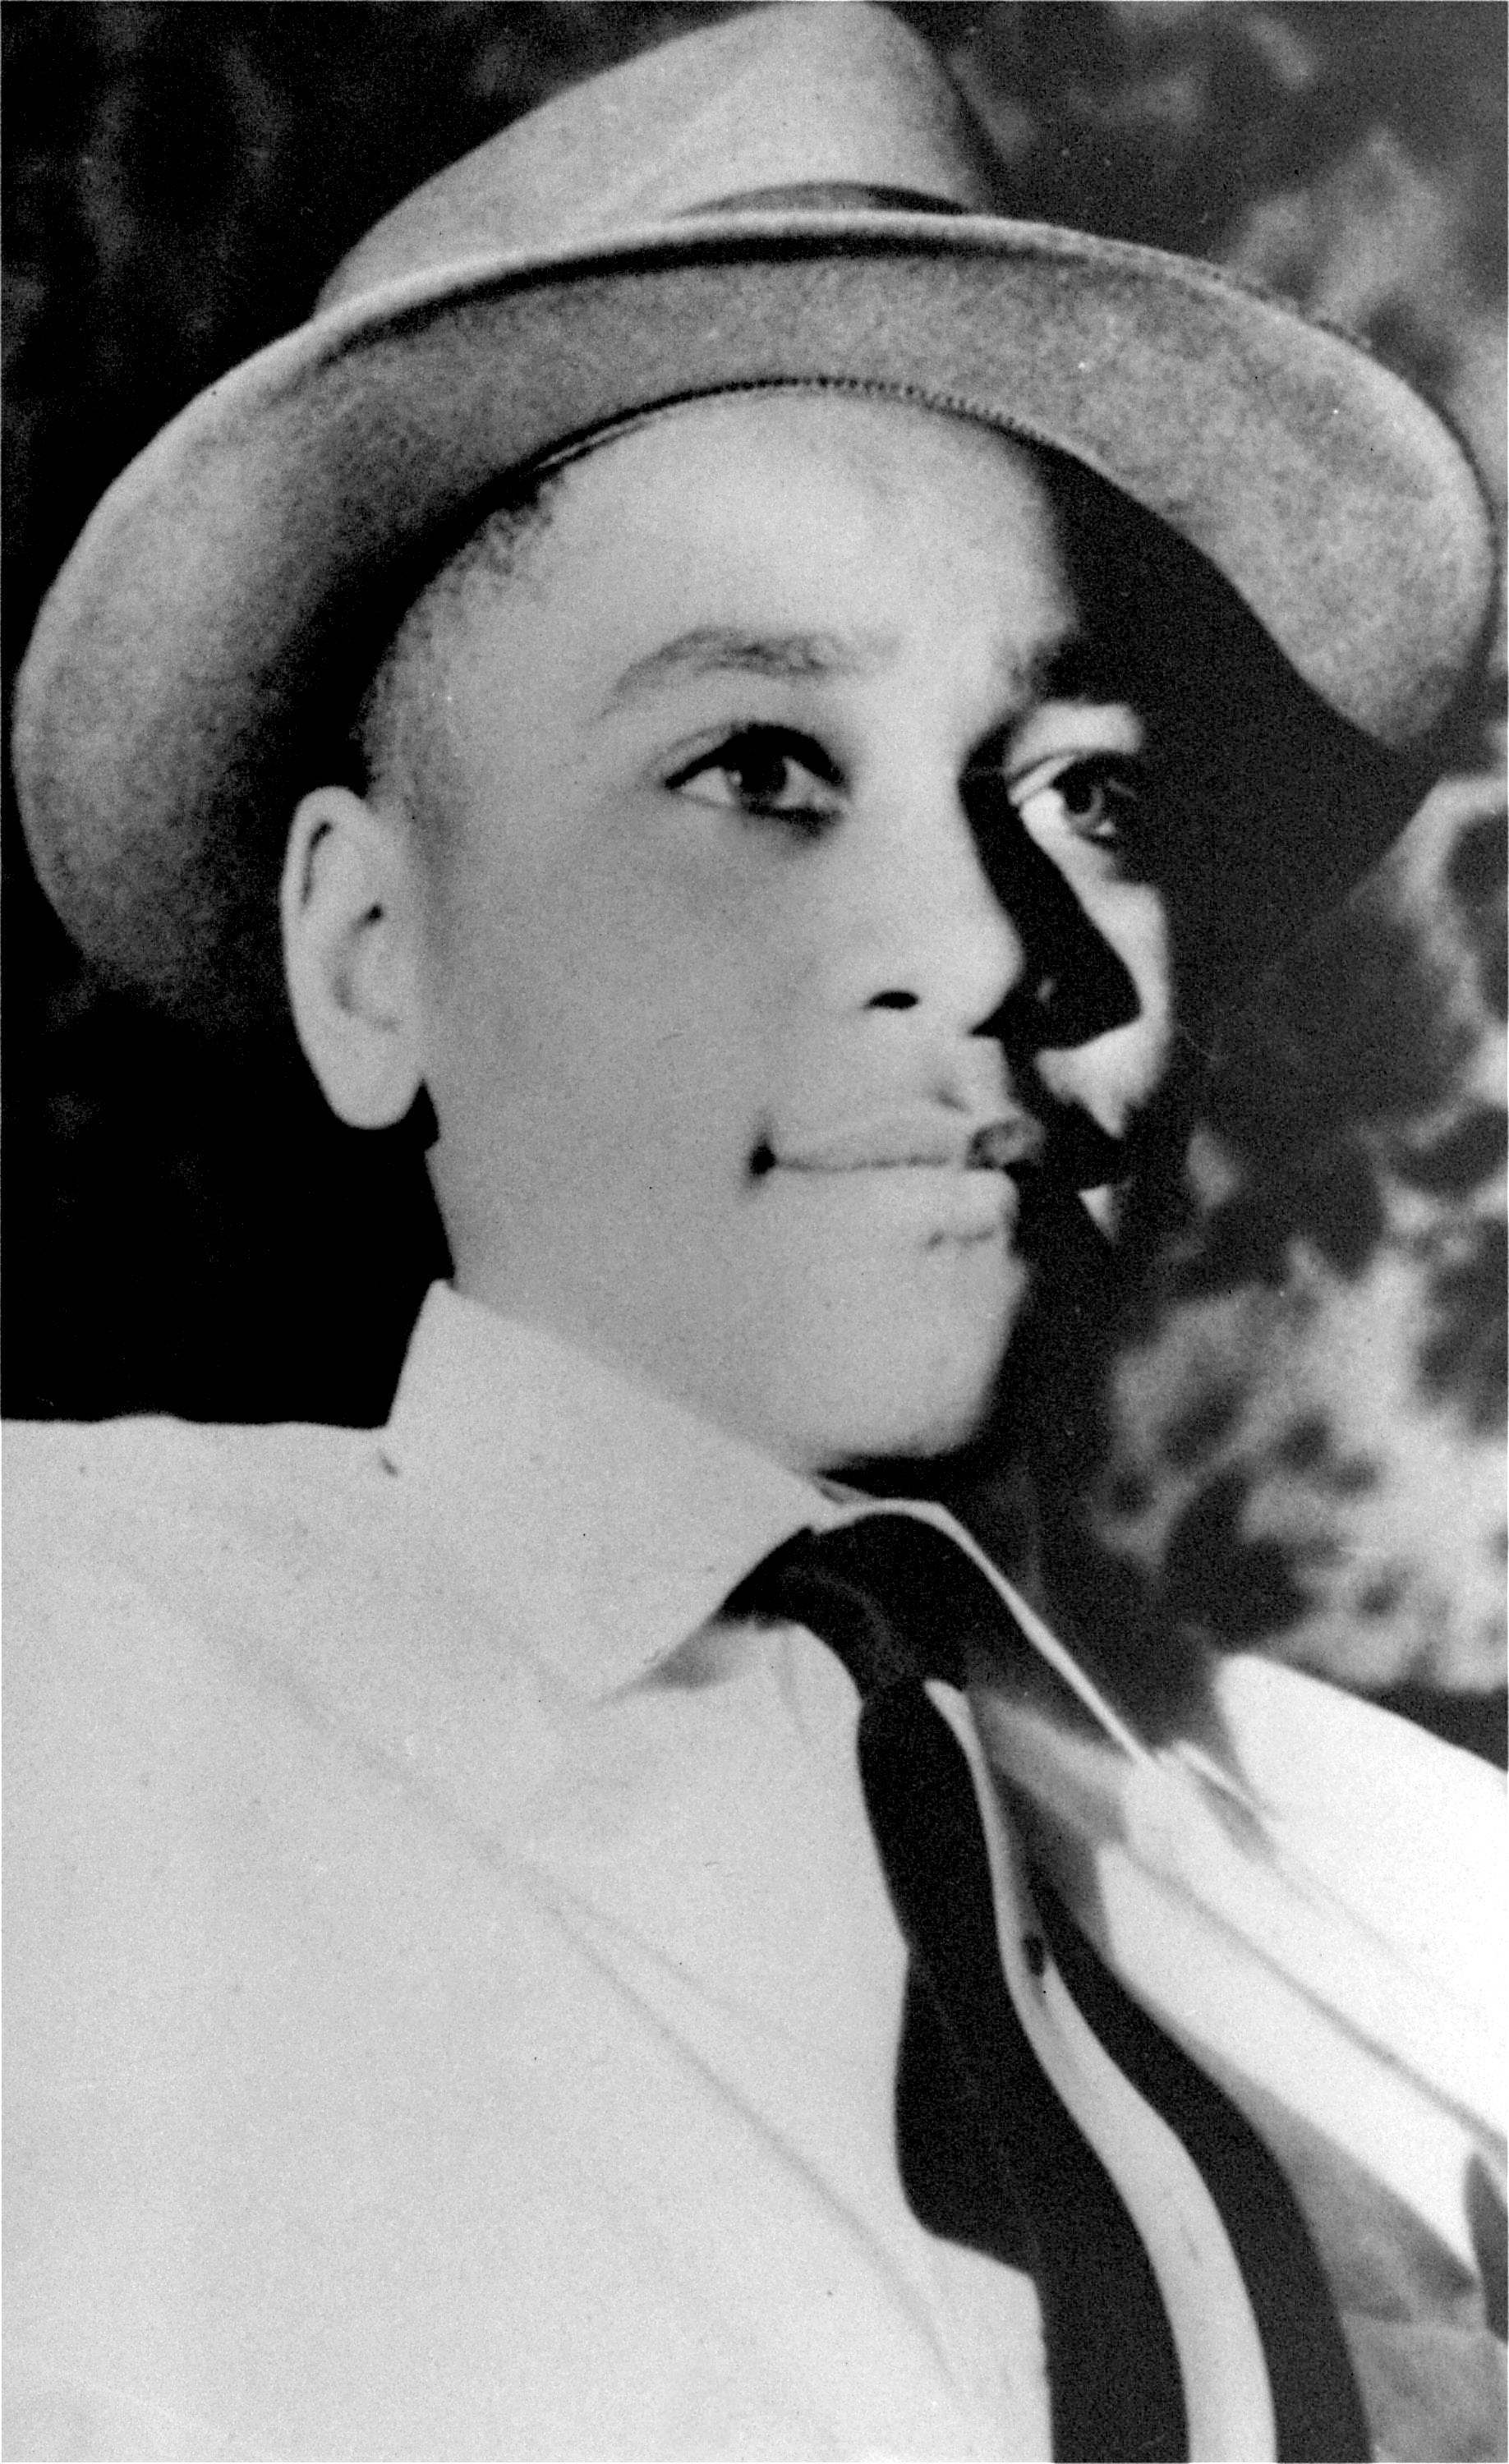 penis big boy black An undated portrait of Emmett Louis Till, a black 14 year old Chicago boy,